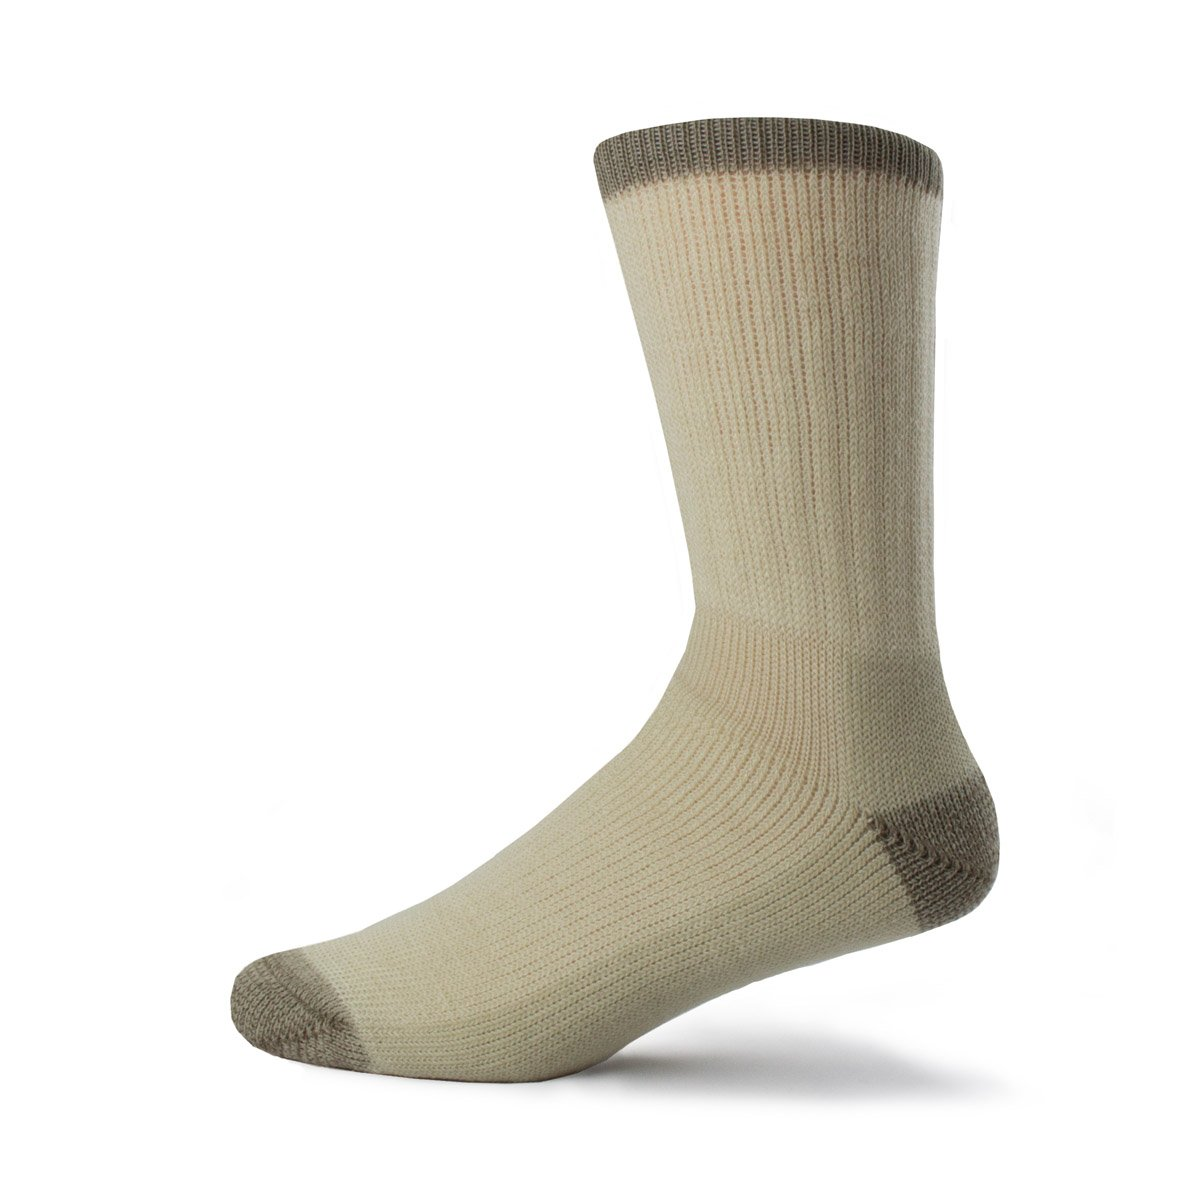 Minus33 Merino Wool Day Hiker Sock, Natural Tan, Medium by Minus33 Merino Wool